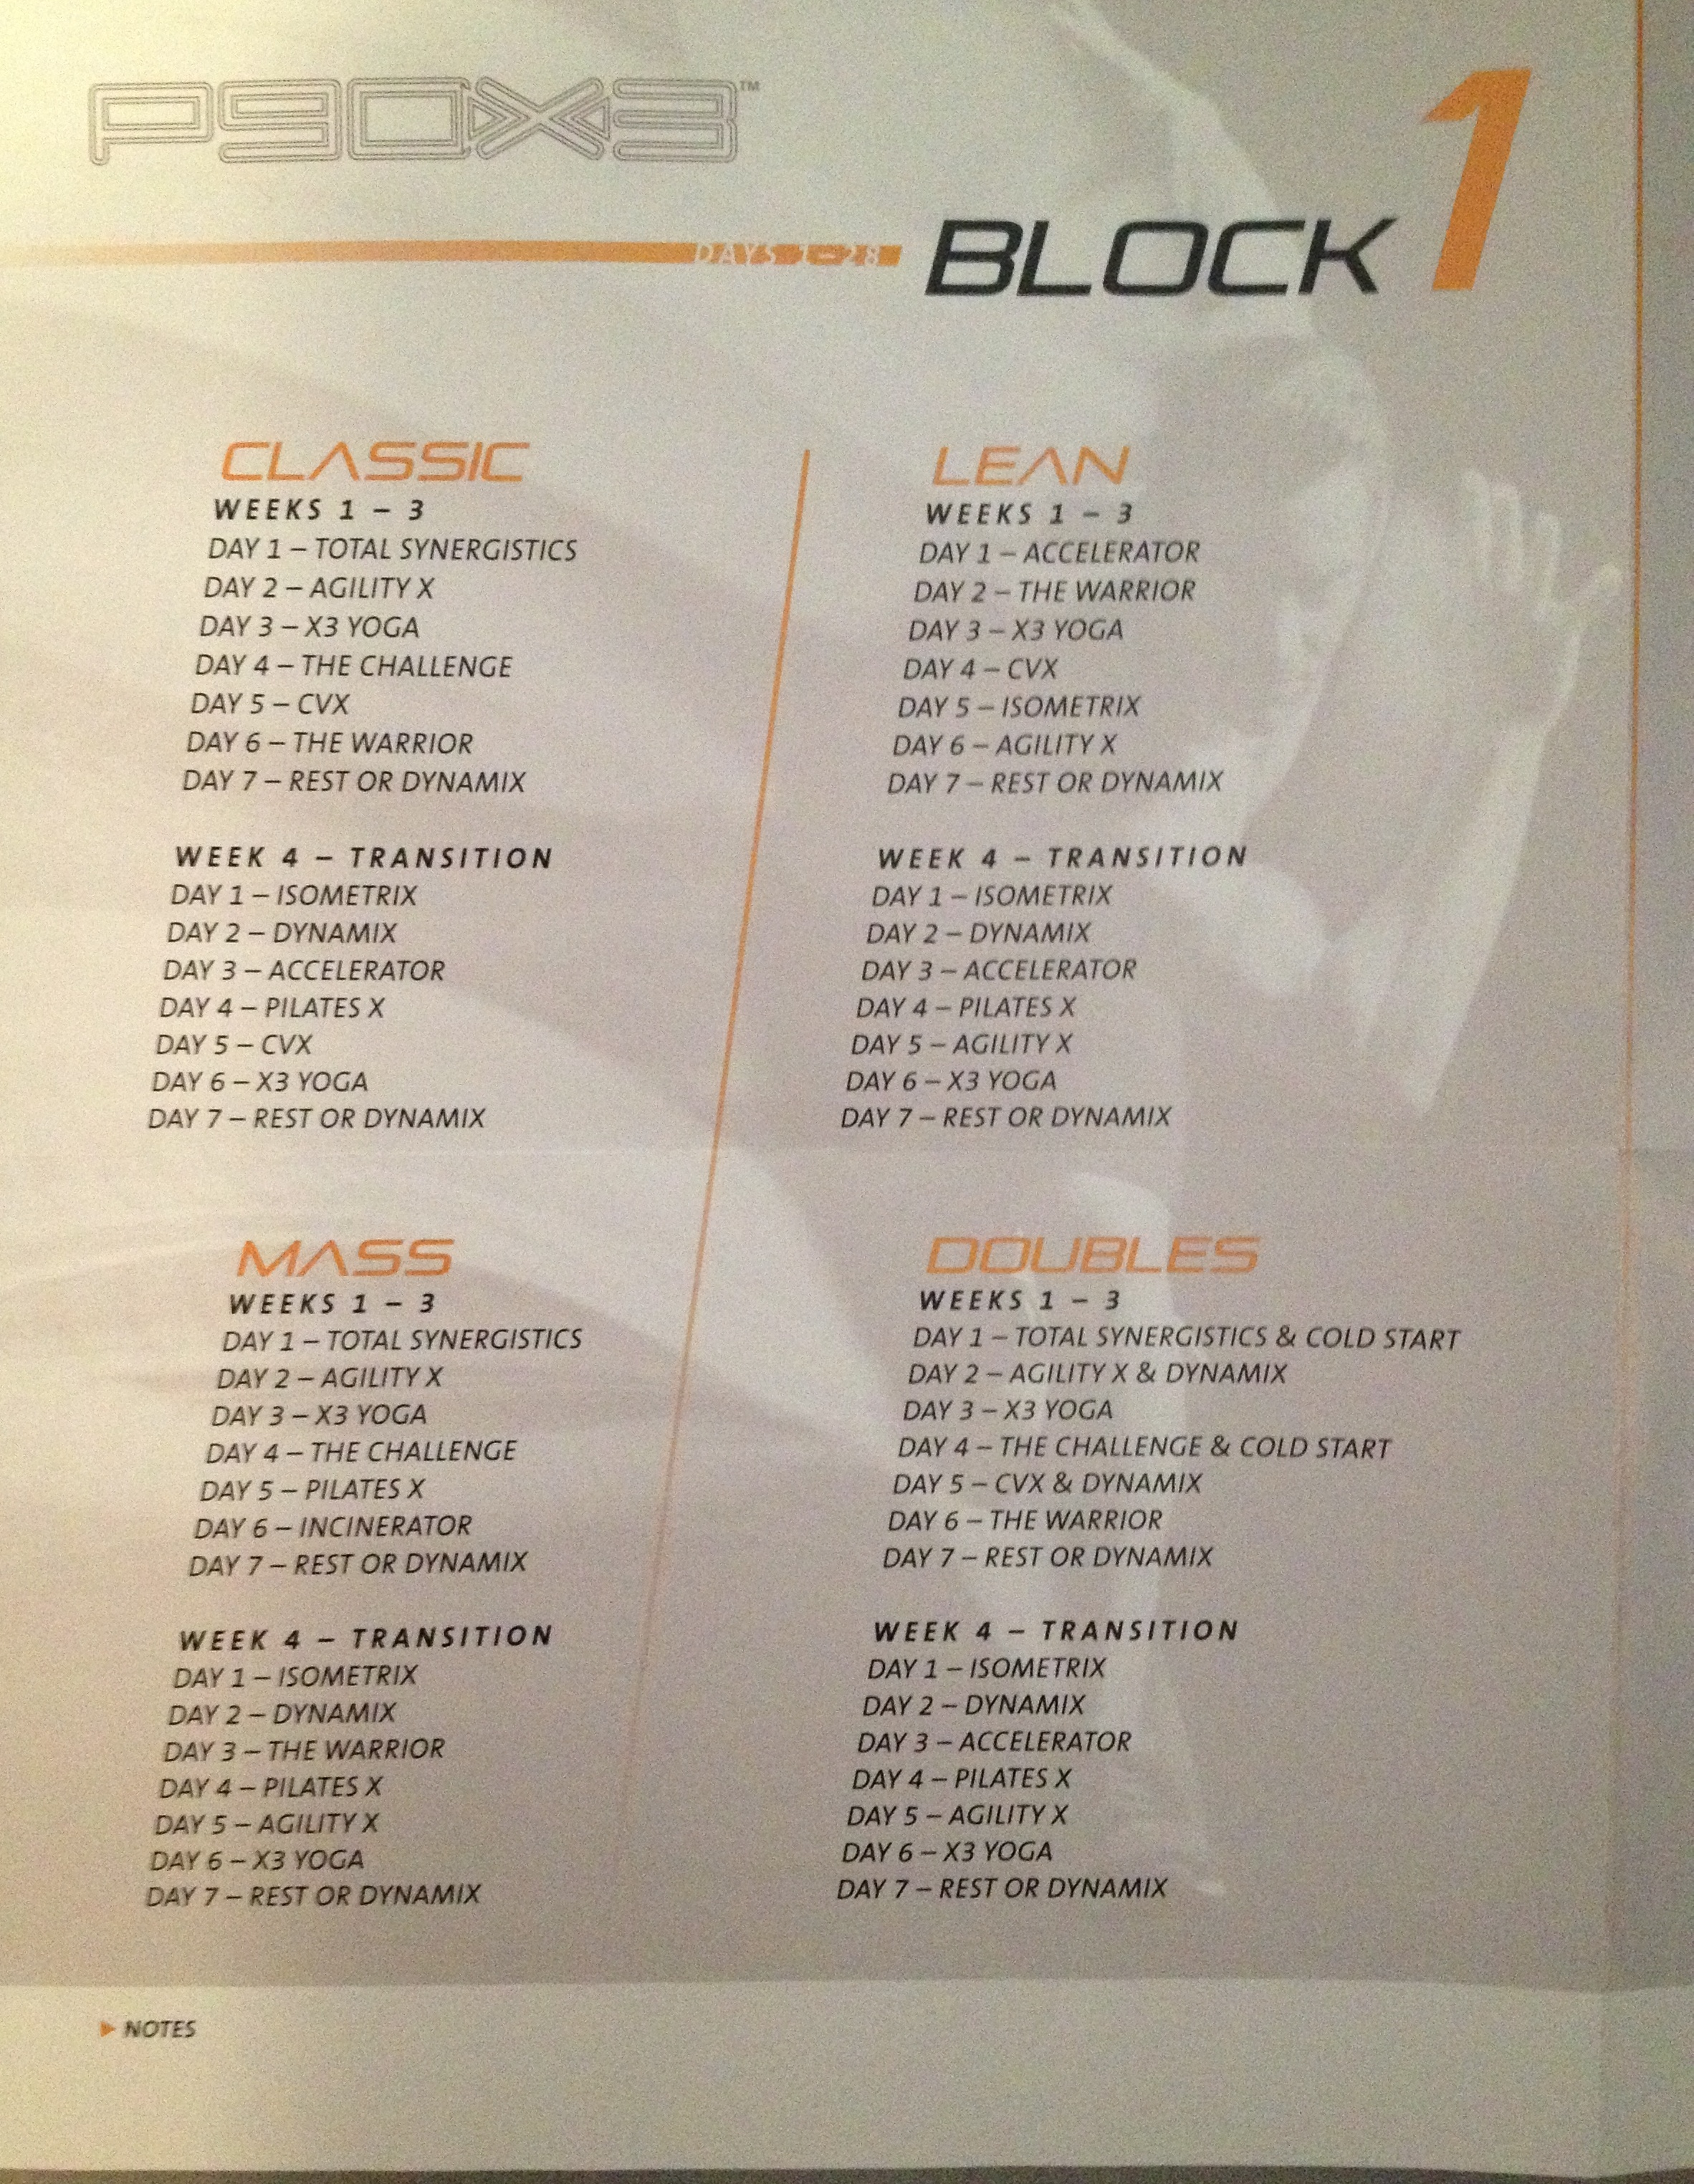 P90x3 Elite Block Workout Calendar Download